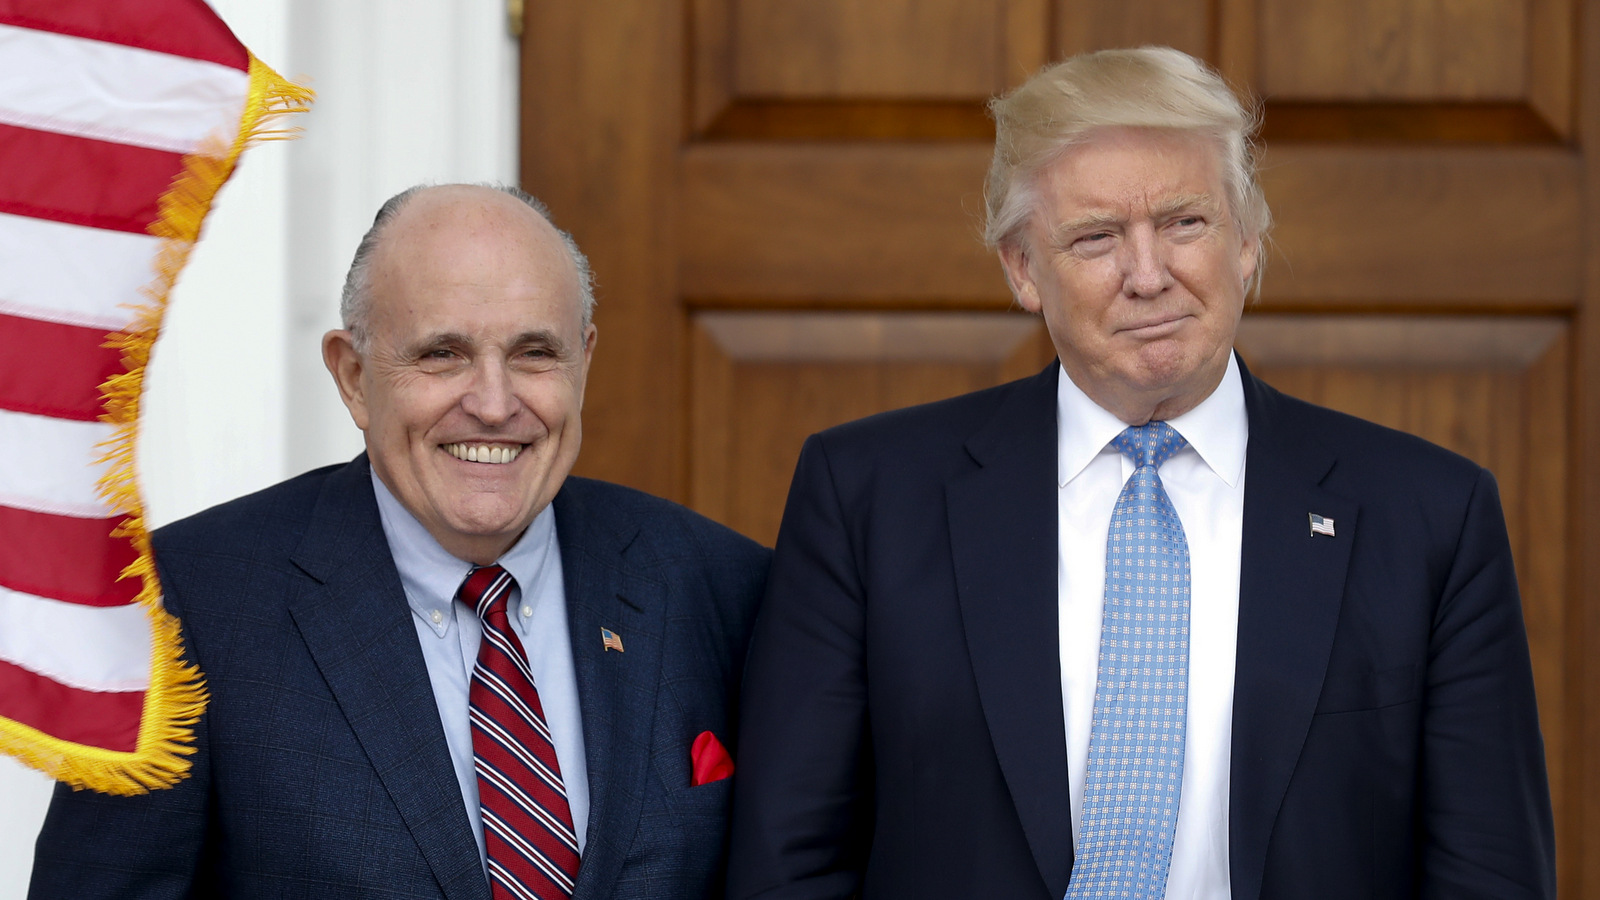 President-elect Donald Trump, right, and former New York Mayor Rudy Giuliani pose for photographs as Giuliani arrives at the Trump National Golf Club Bedminster clubhouse, Sunday, Nov. 20, 2016, in Bedminster, N.J.. (AP Photo/Carolyn Kaster)